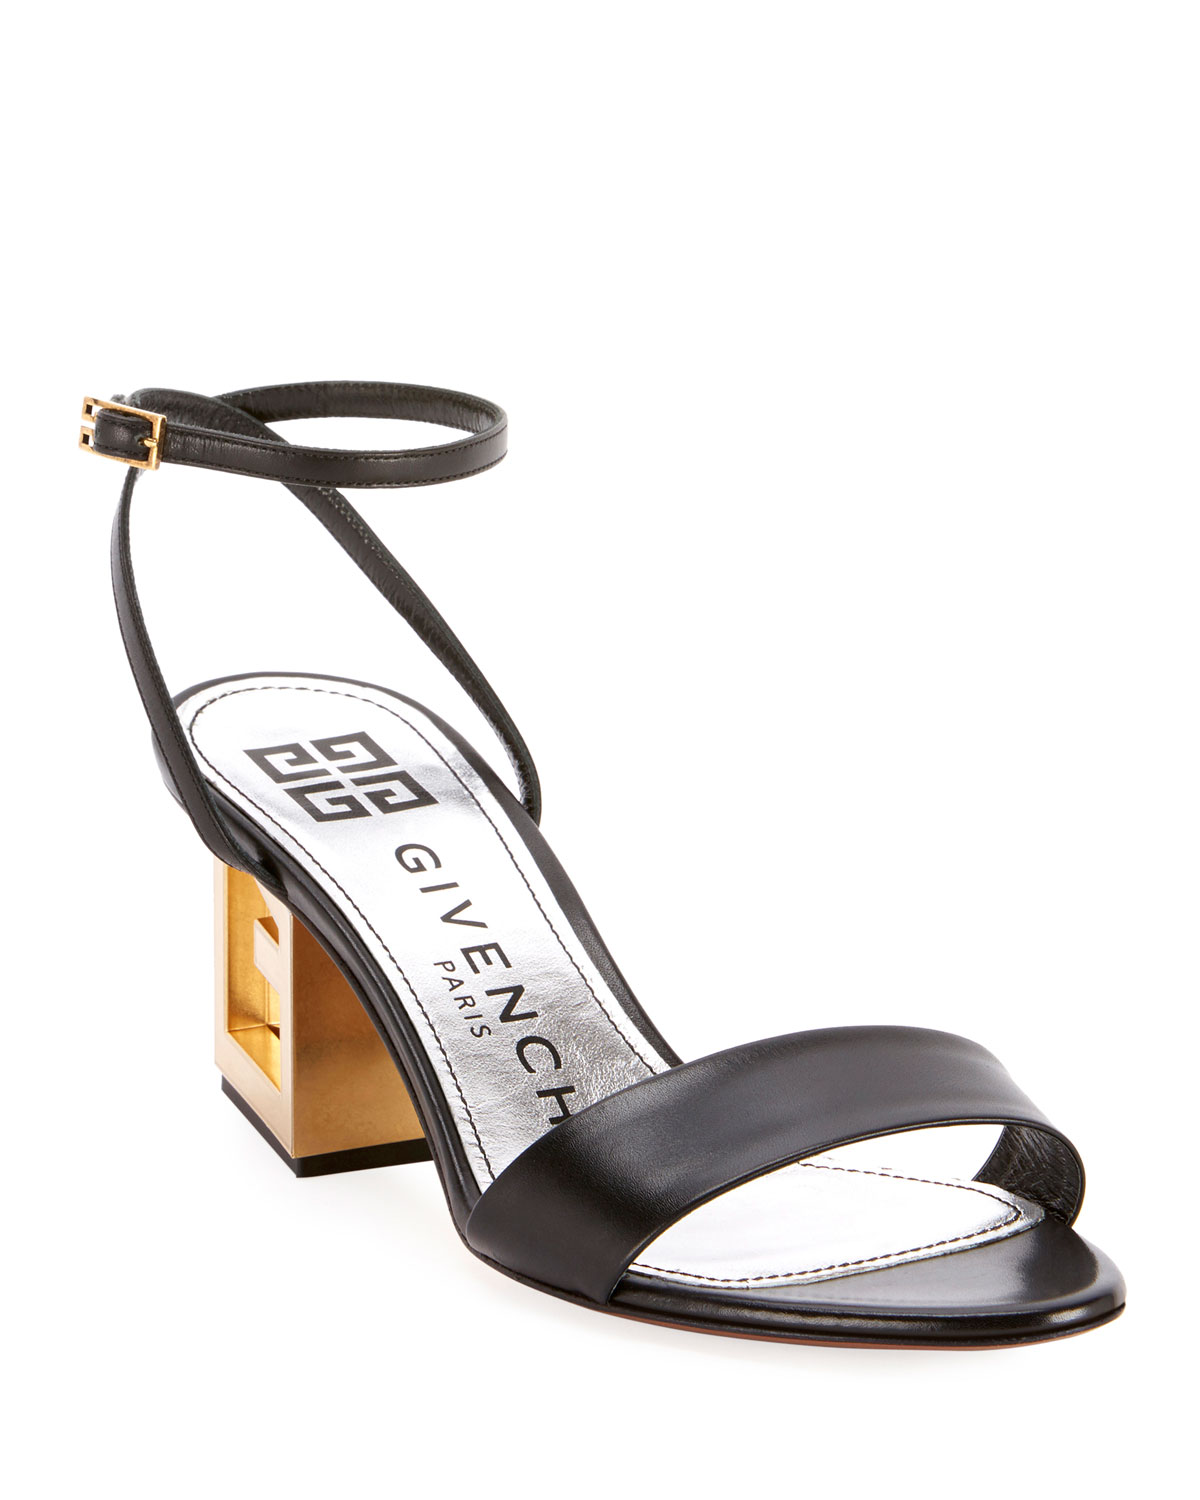 Givenchy Leather Sandals with Triangle